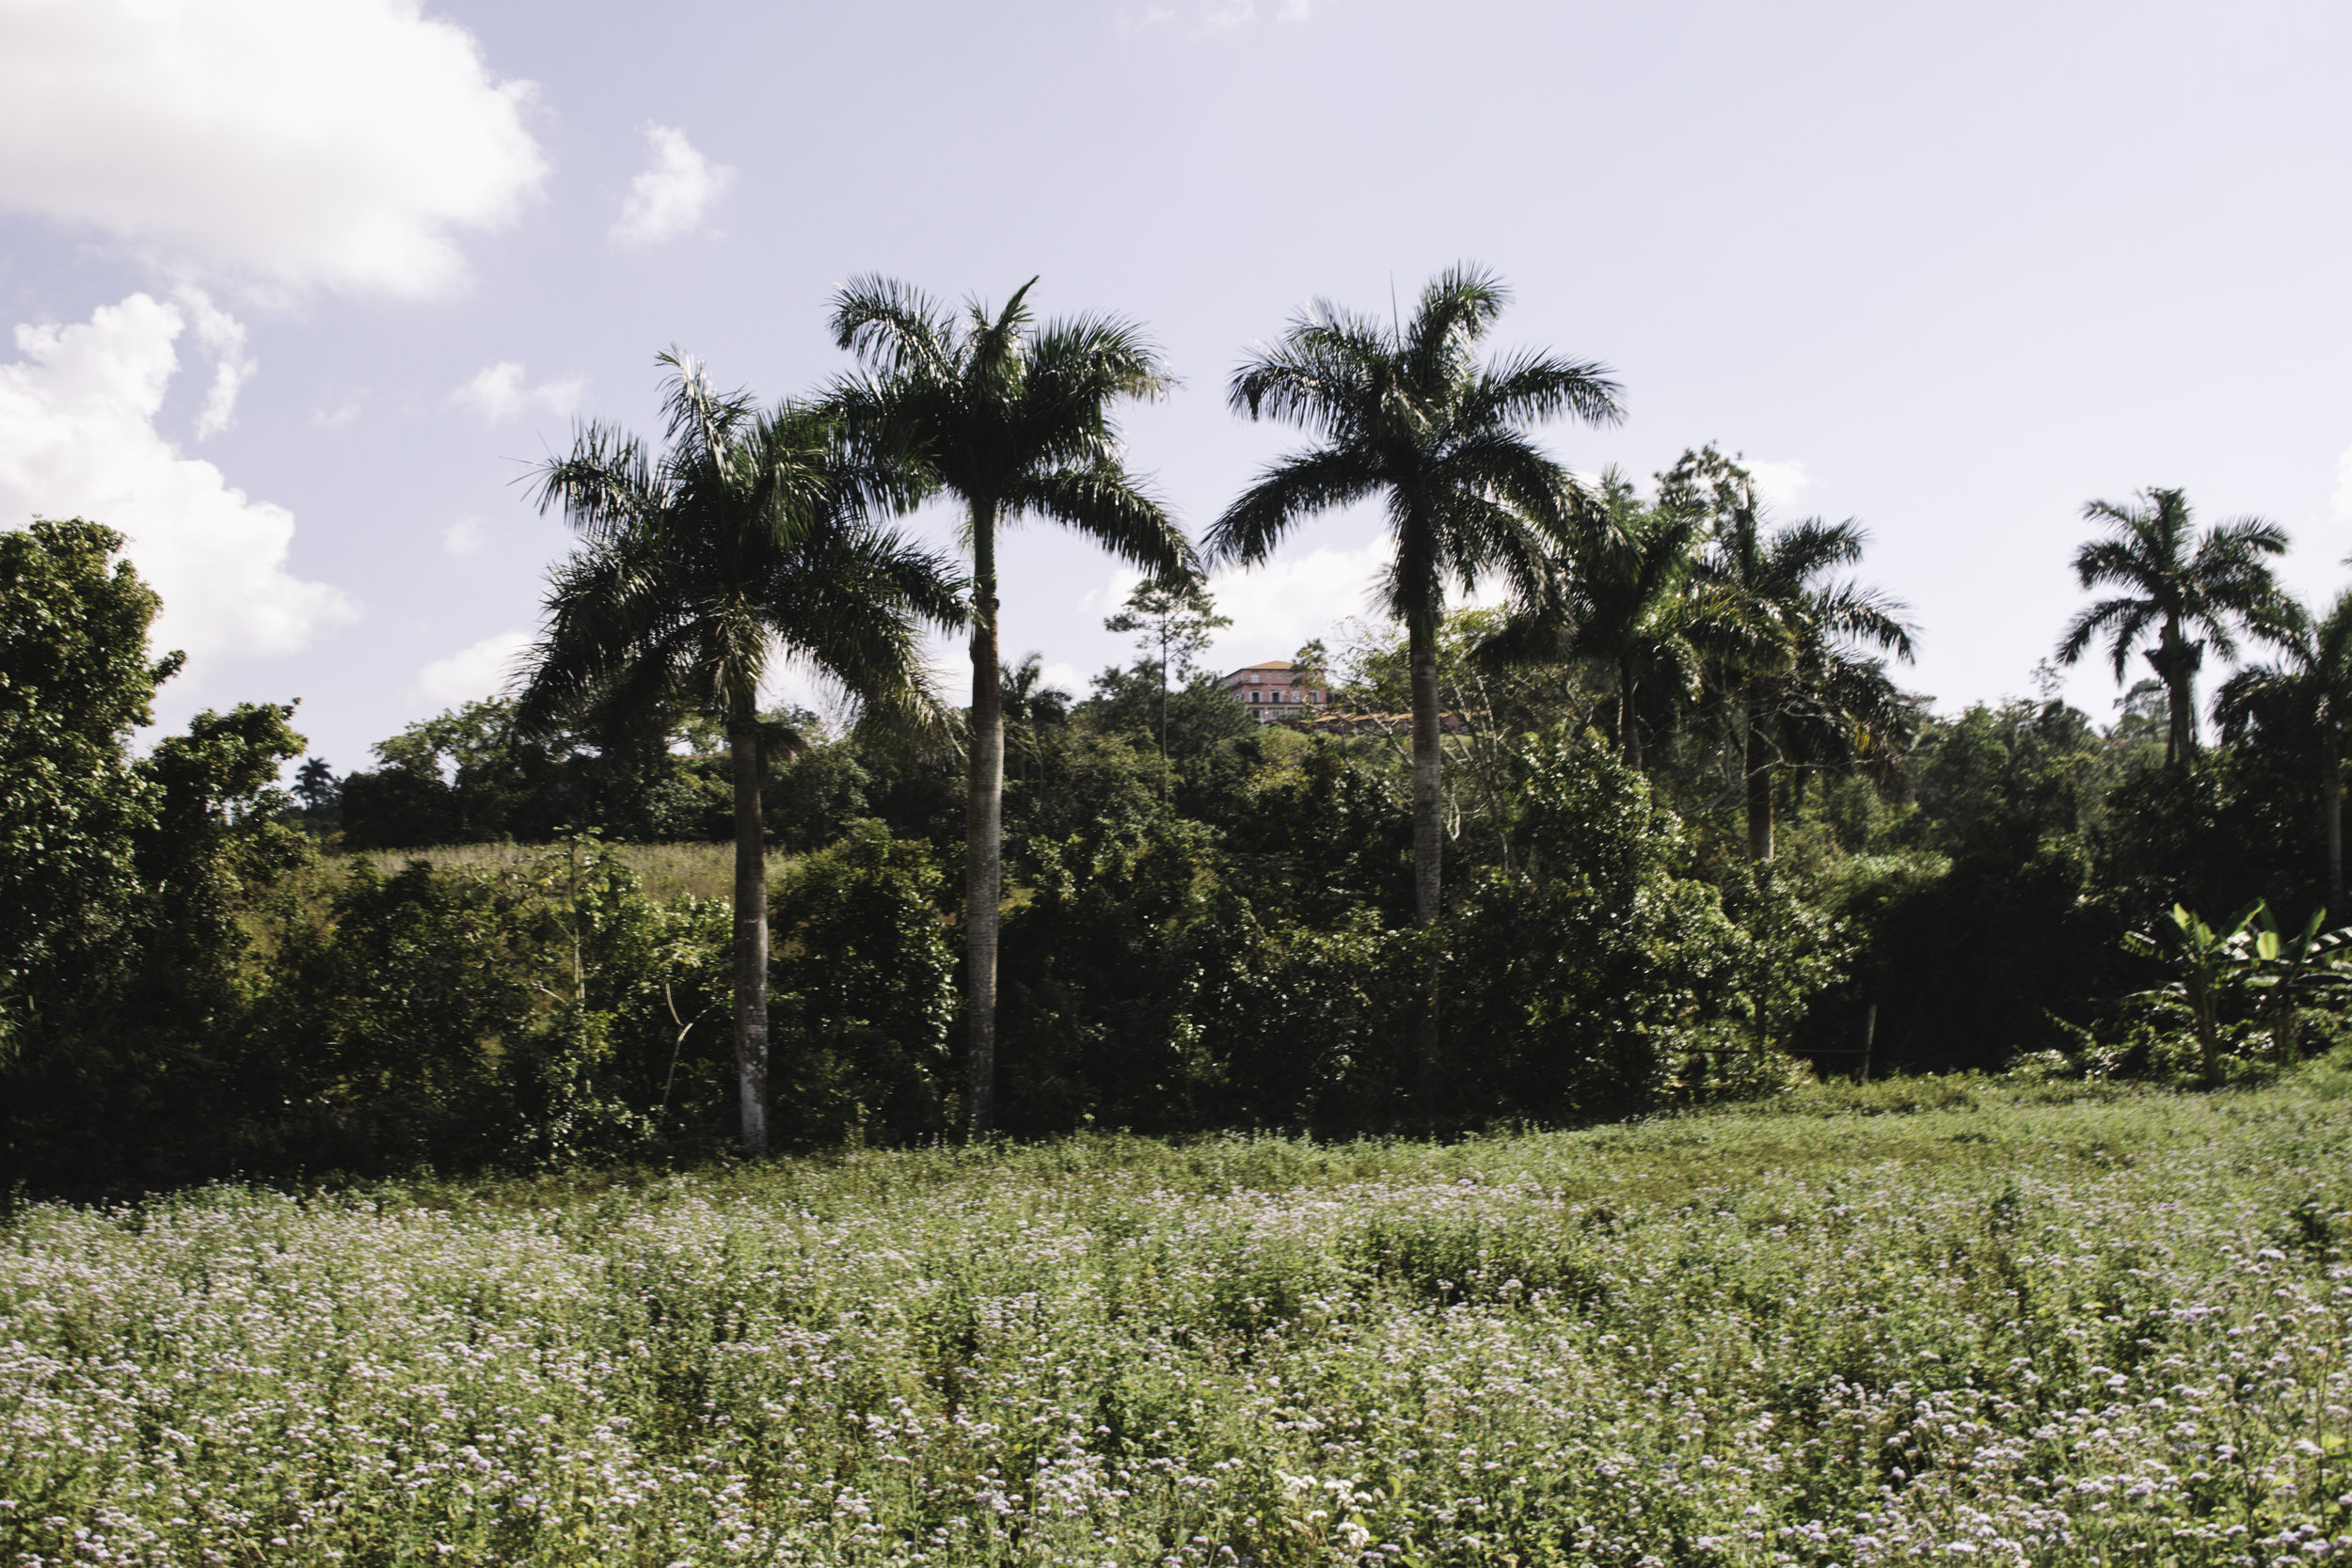 Our Favorite Day in Cuba | Horseback Riding in Vinales, Cuba | Beyond Ordinary Guides-32.jpg